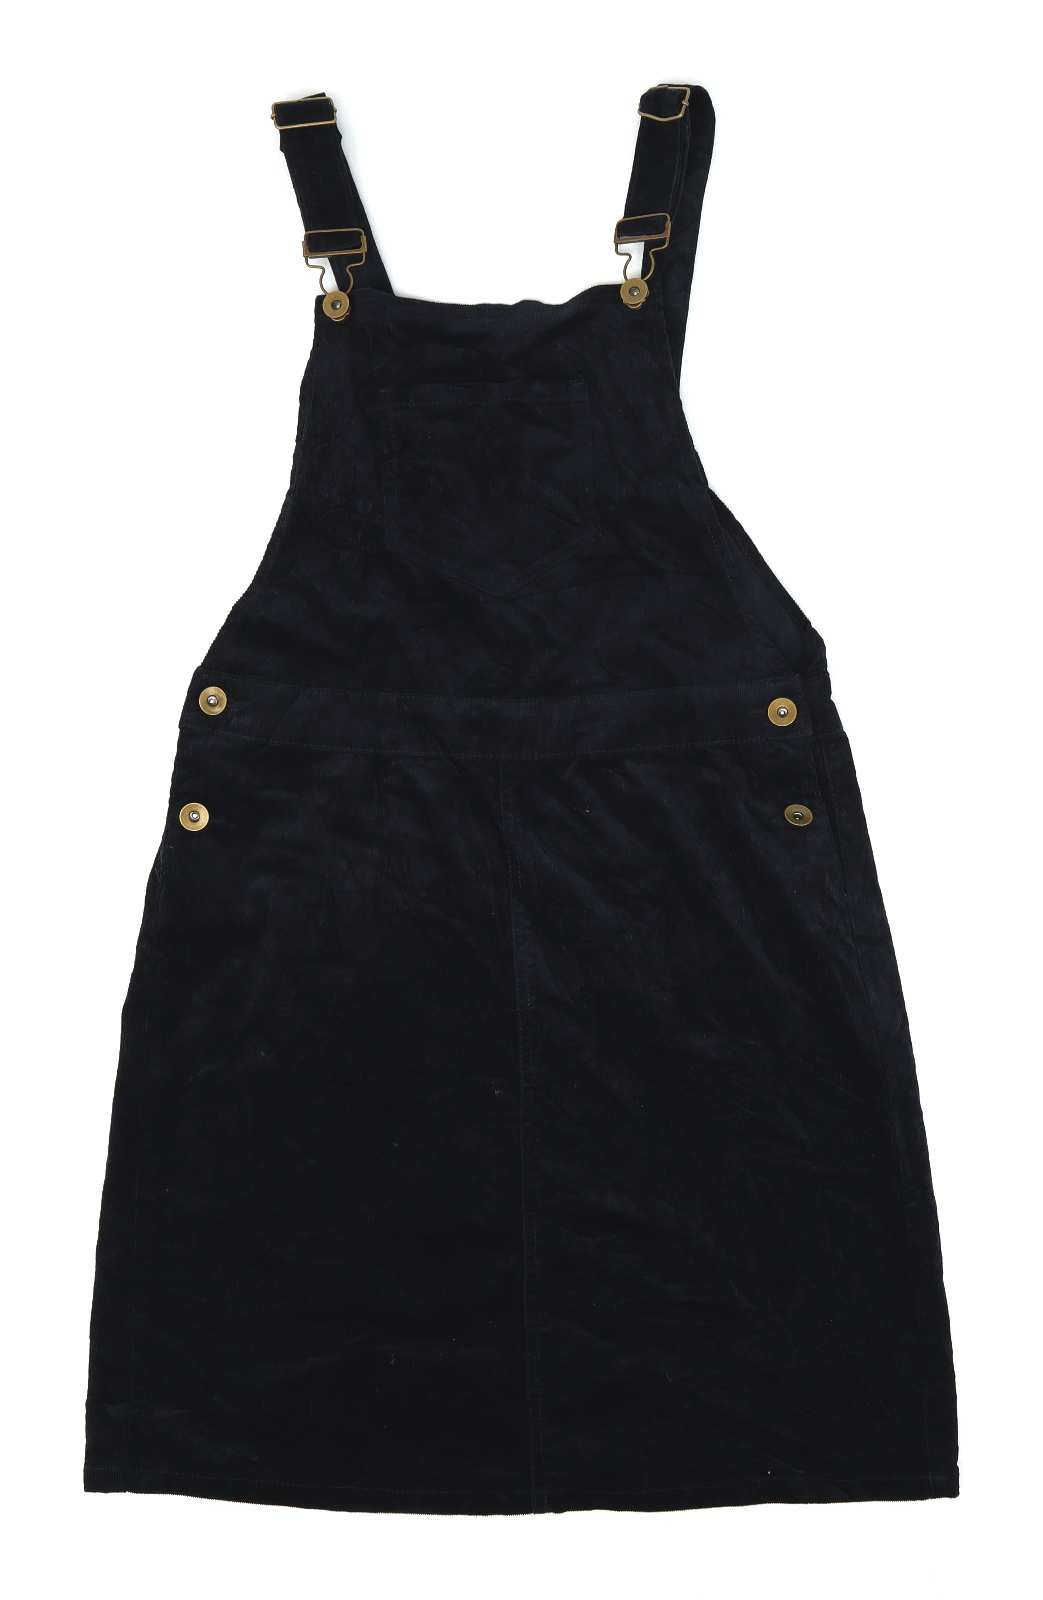 TU Womens Size 10 Black Cotton Blend Corduroy Dungaree Dress